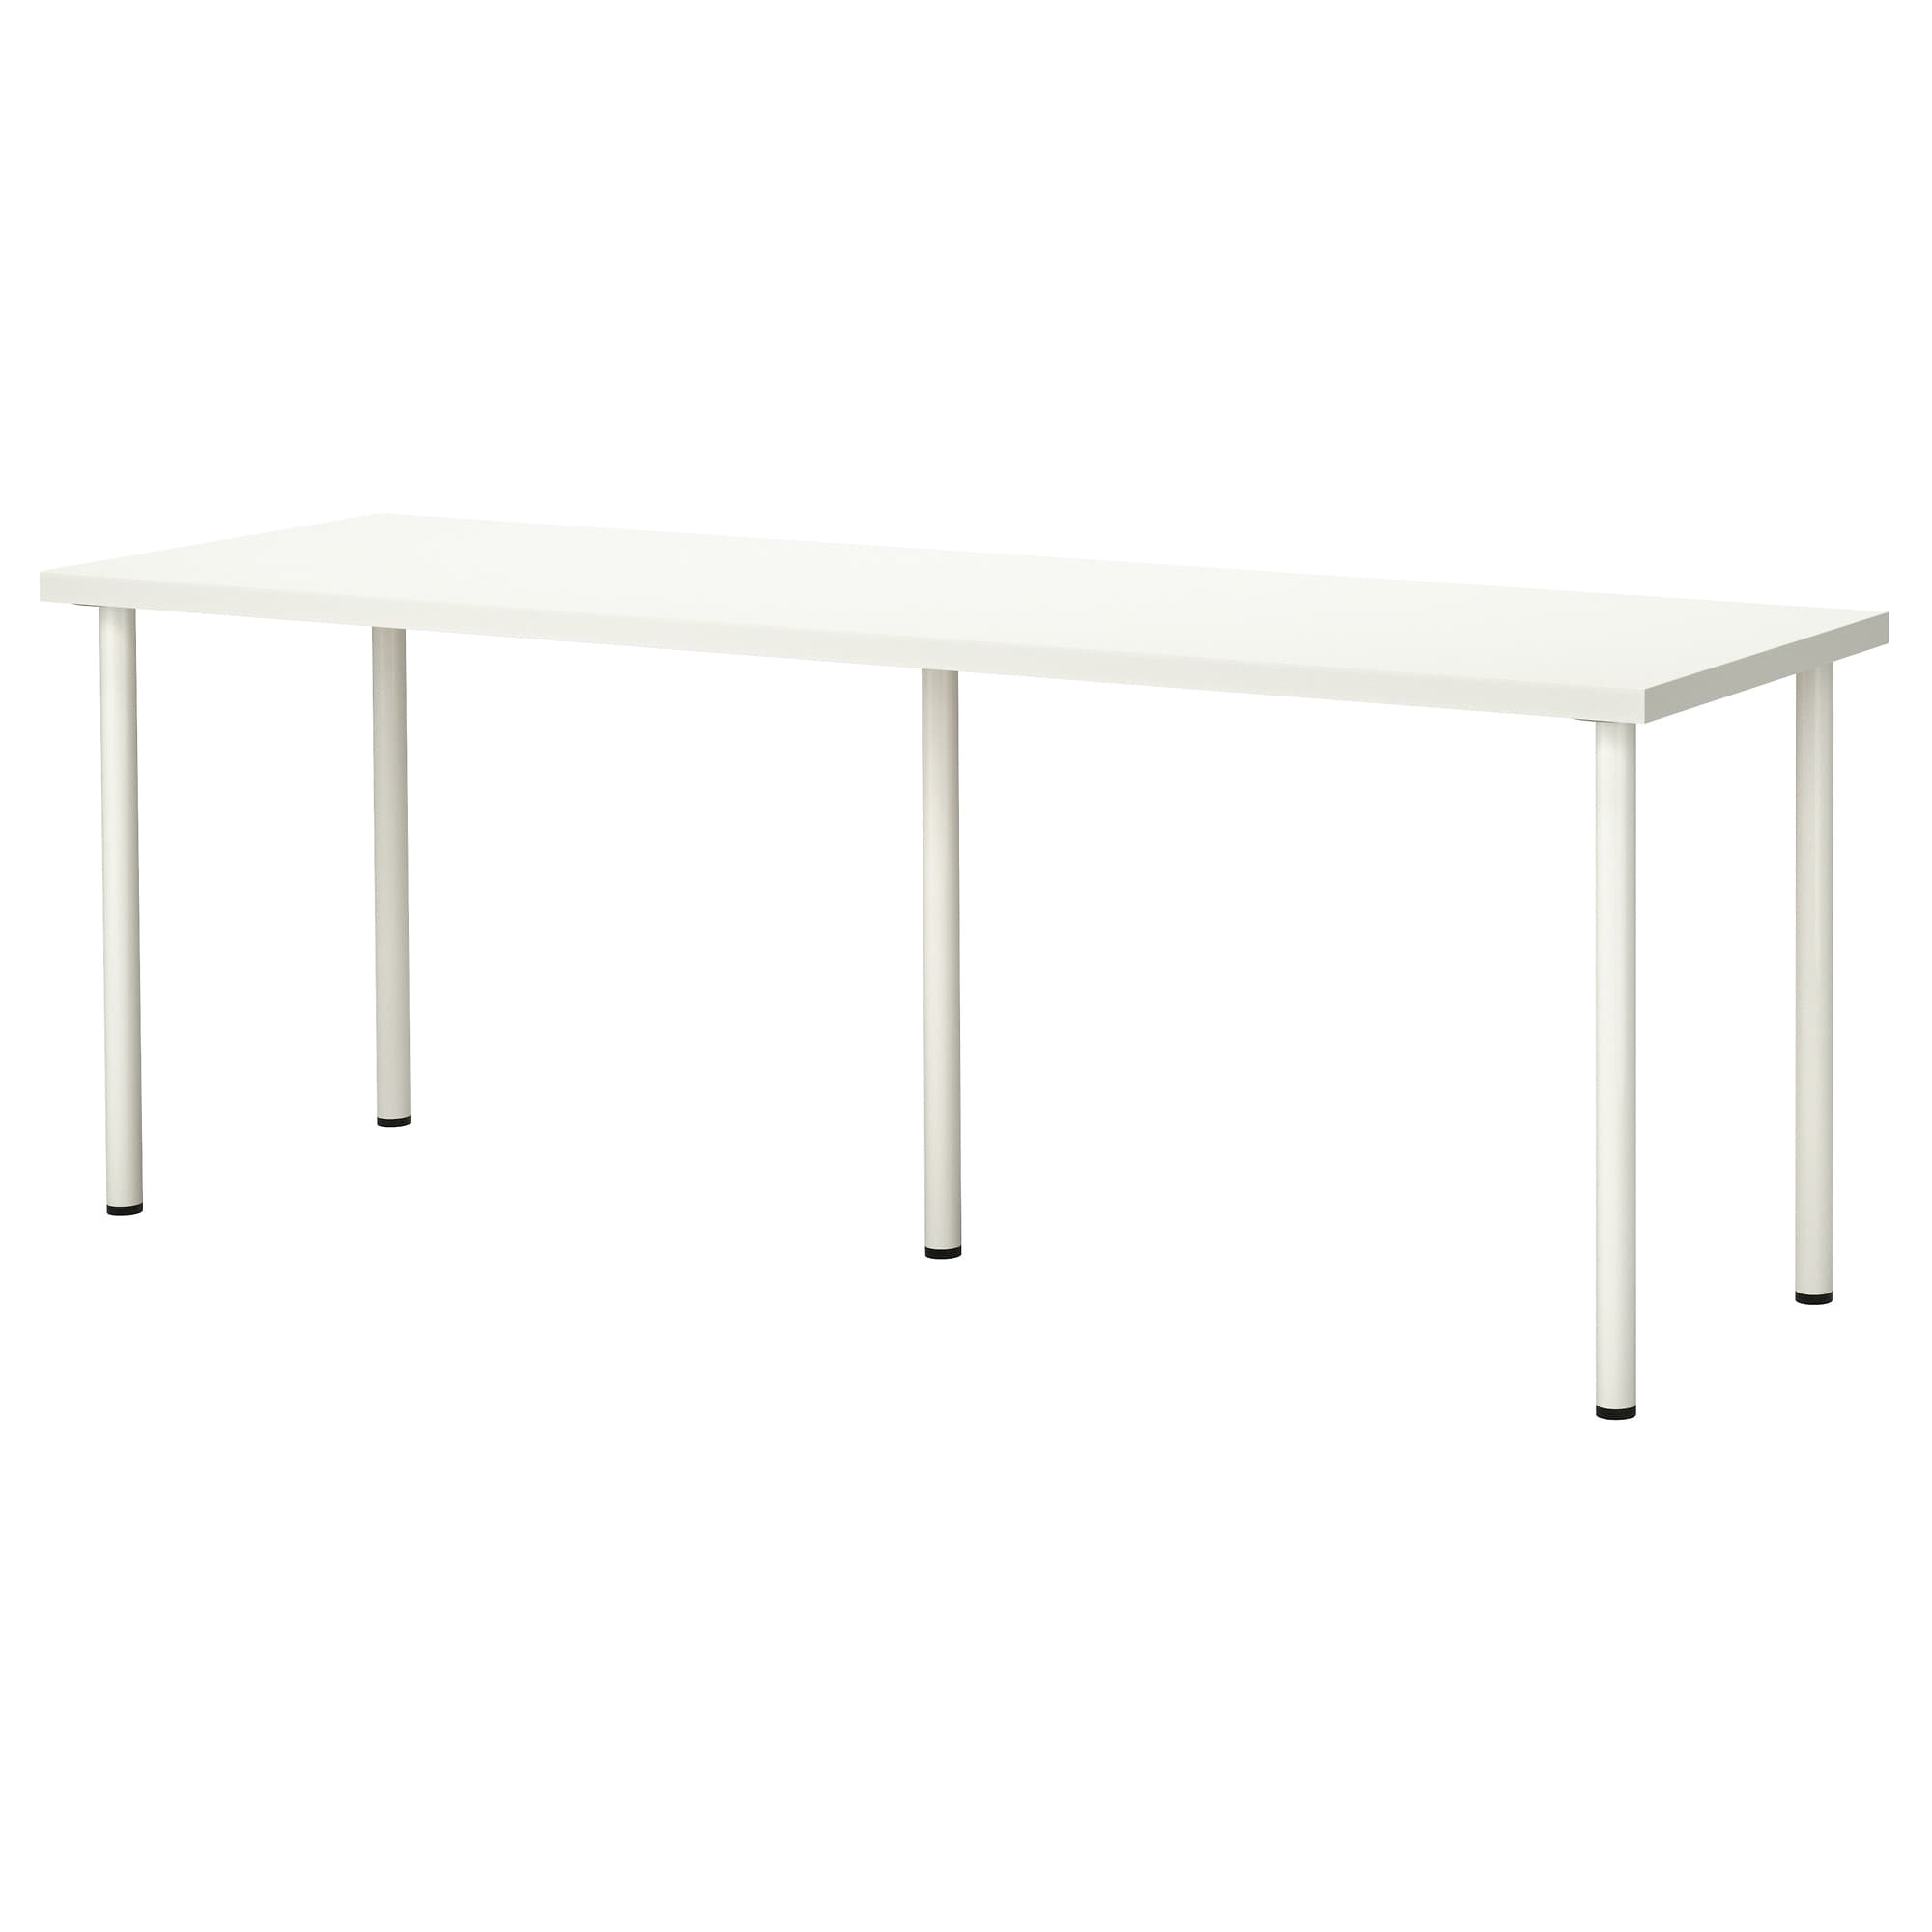 ikea adils linnmon table a long table top makes it easy to create a workspace